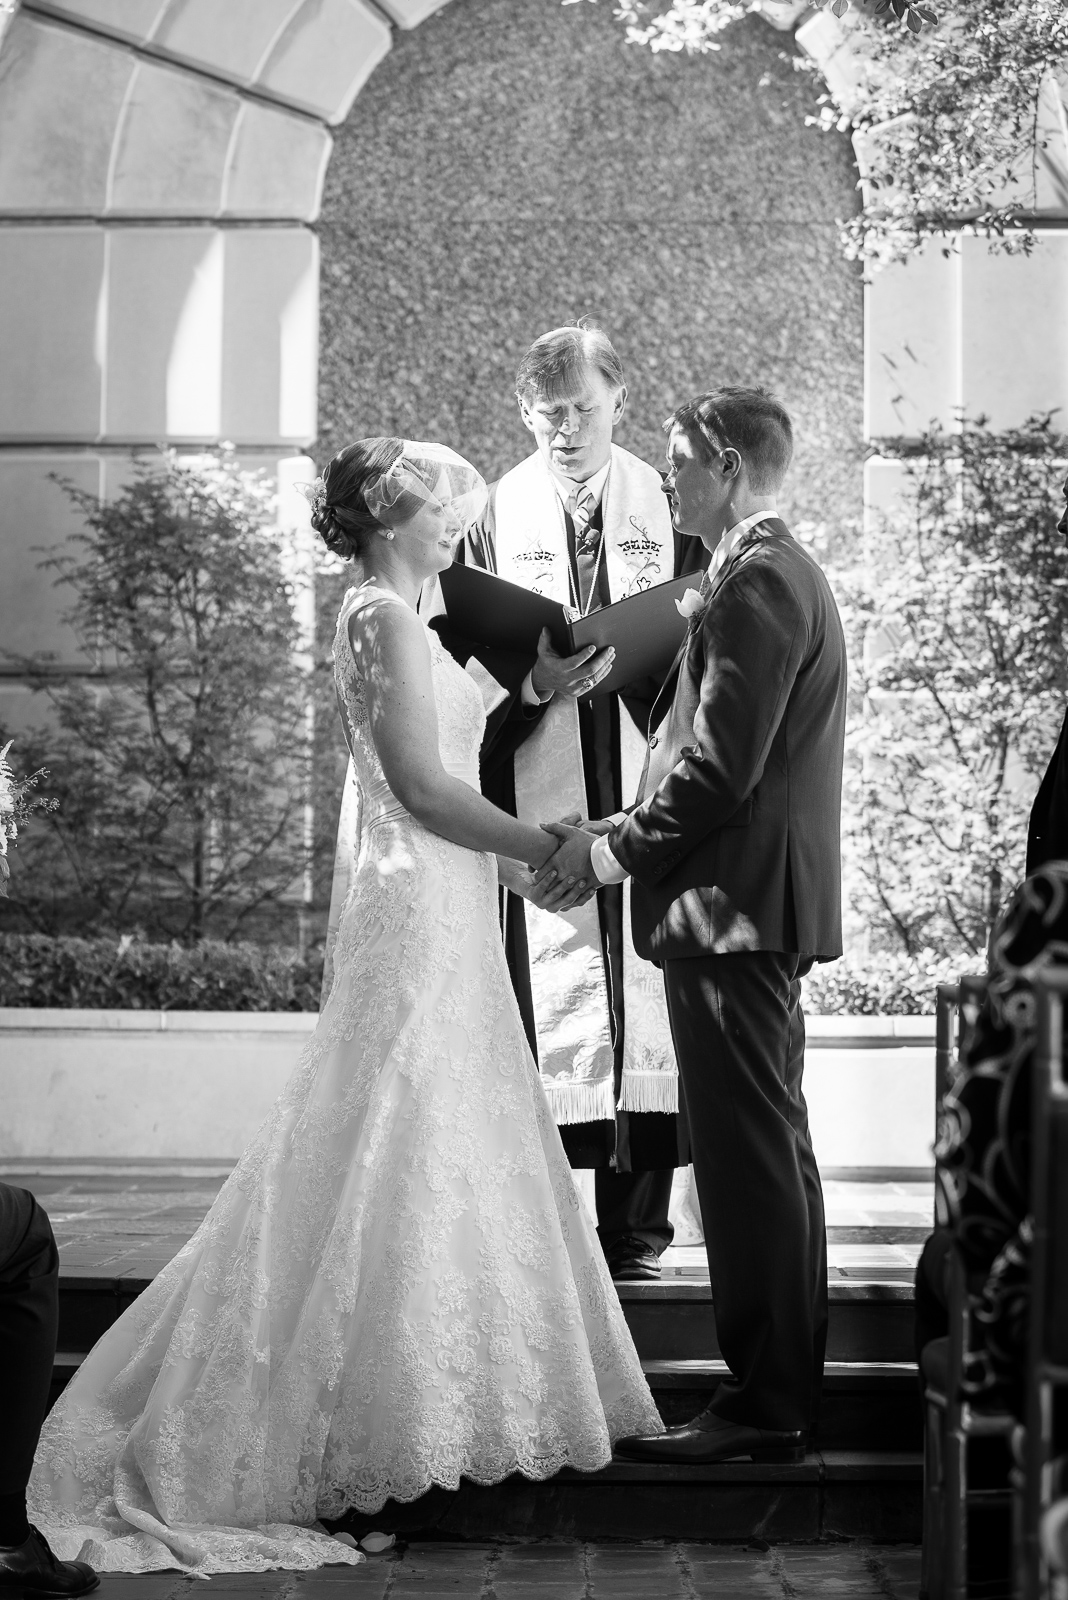 Michael-Napier-Weddings-Sprague-Stanley Wedding-Album-3 (26).jpg